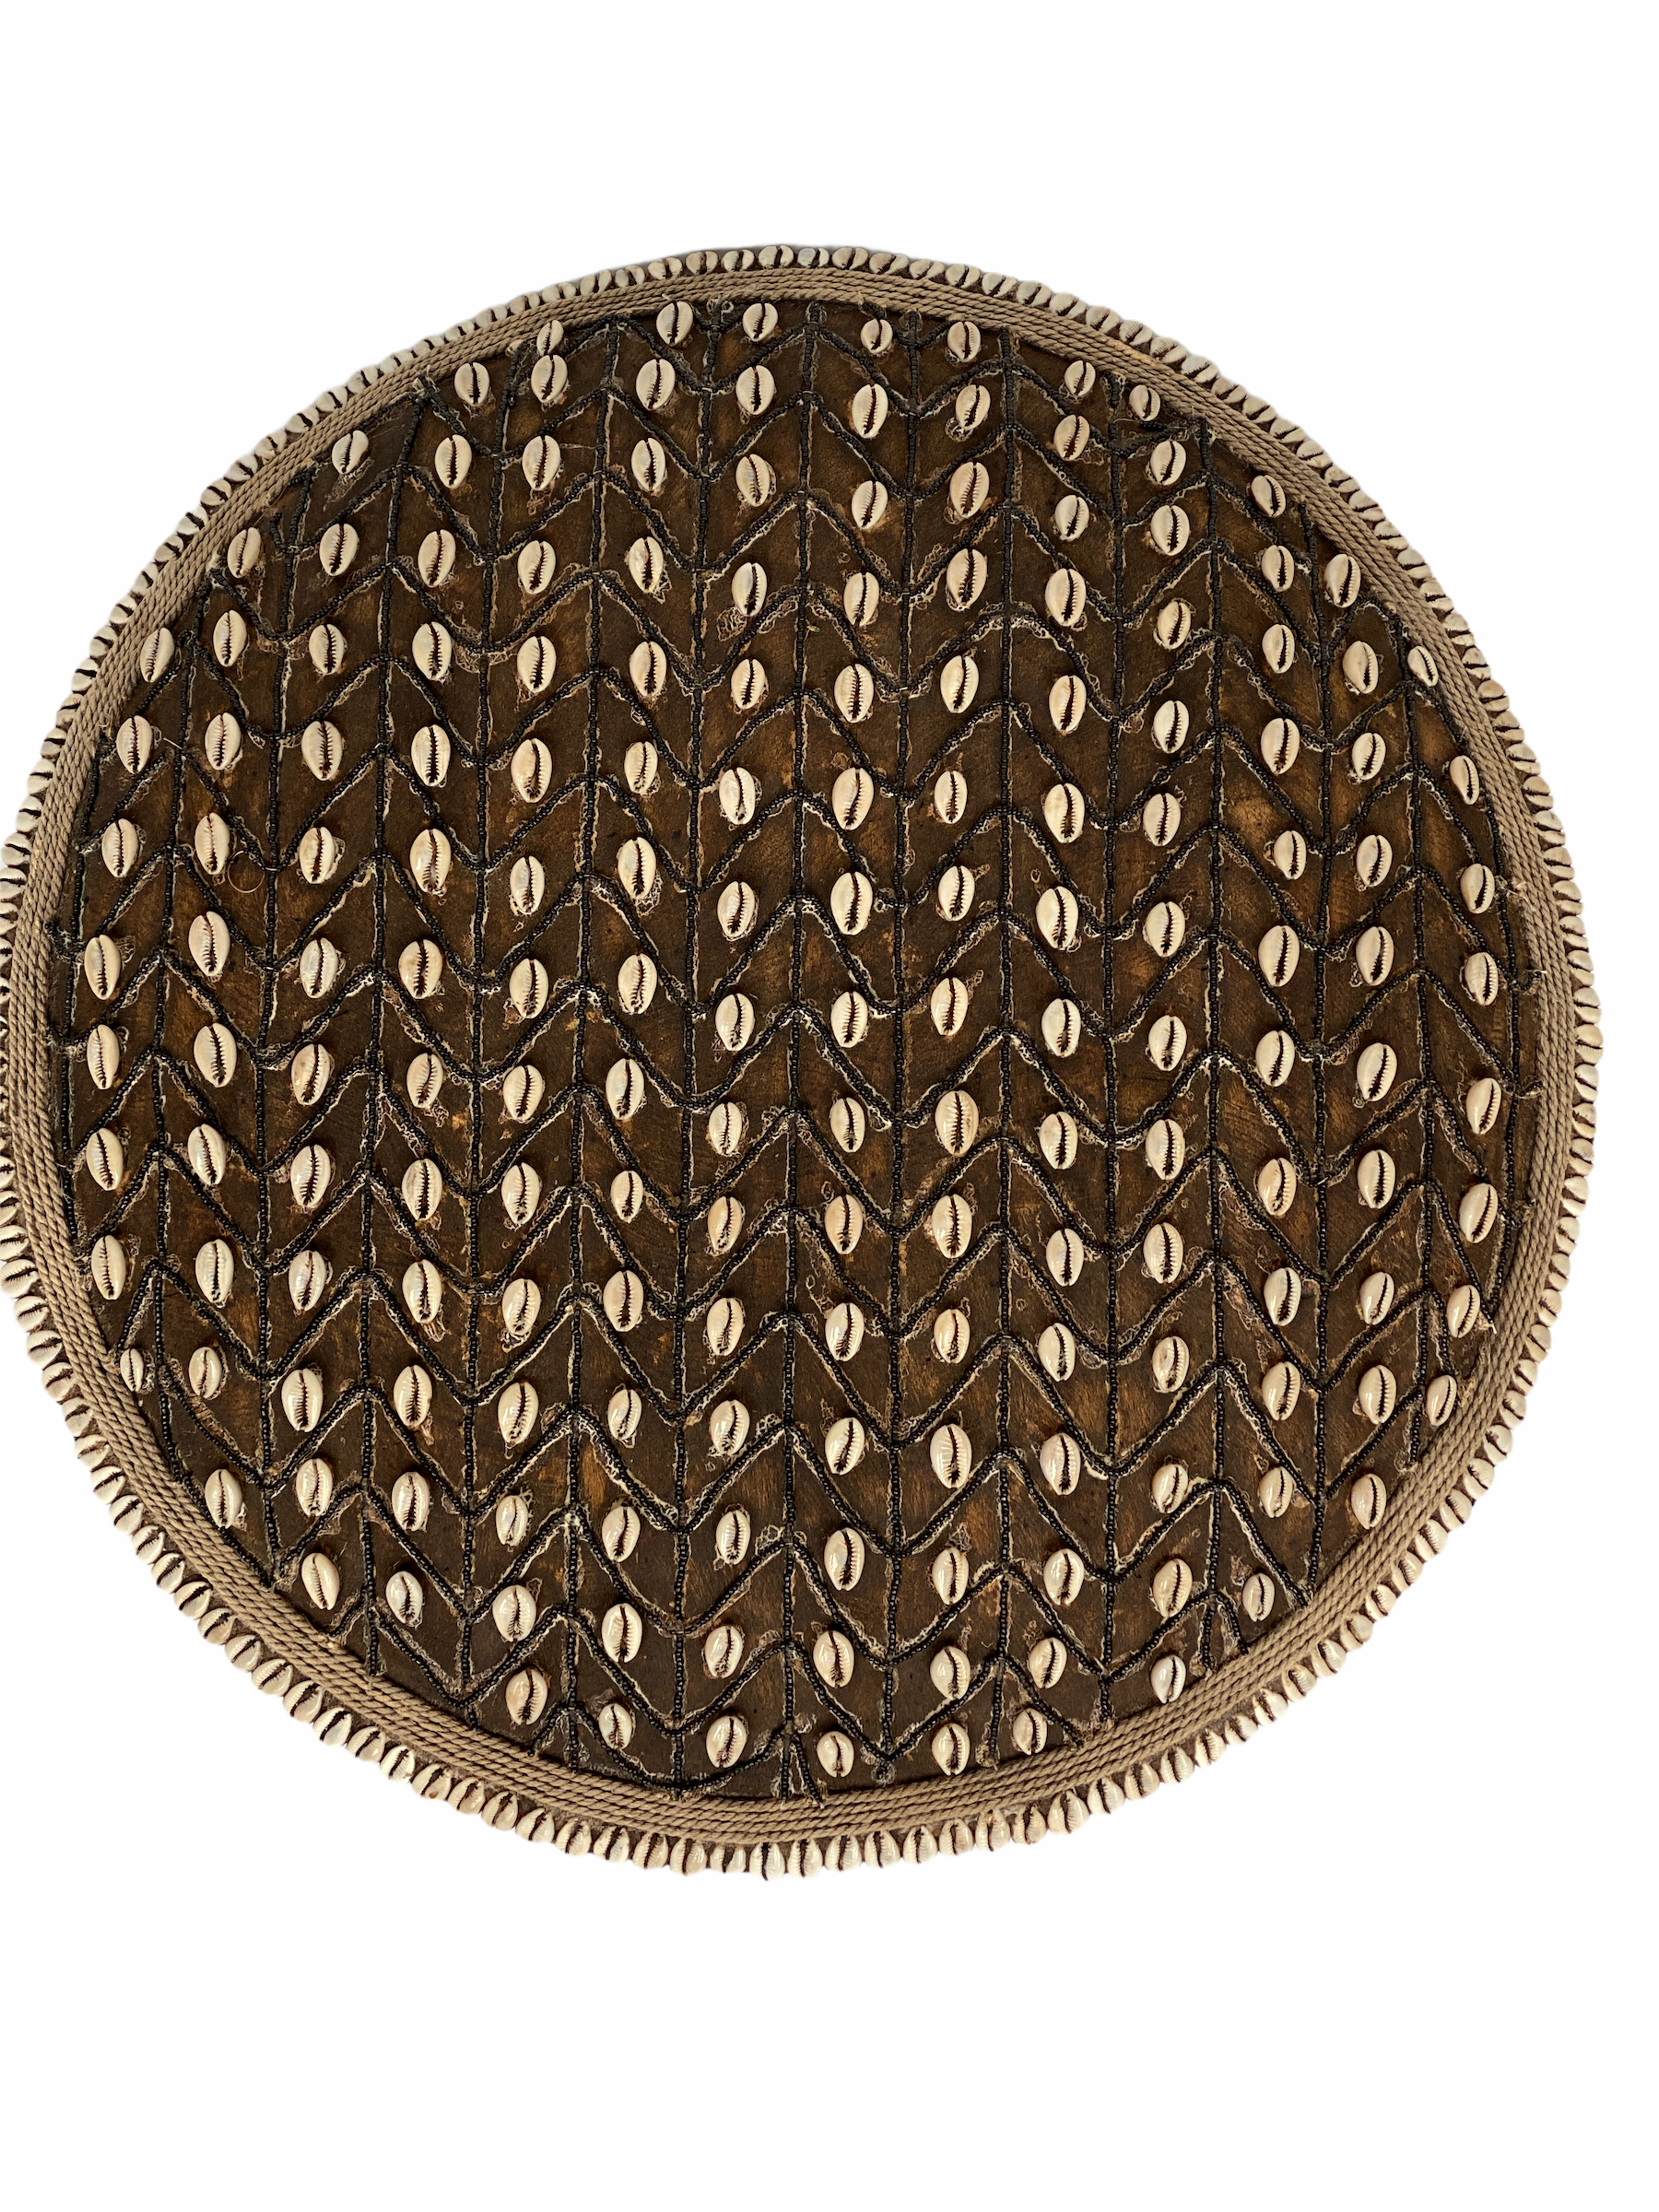 Cameroon Beaded Shield - L - 55cm